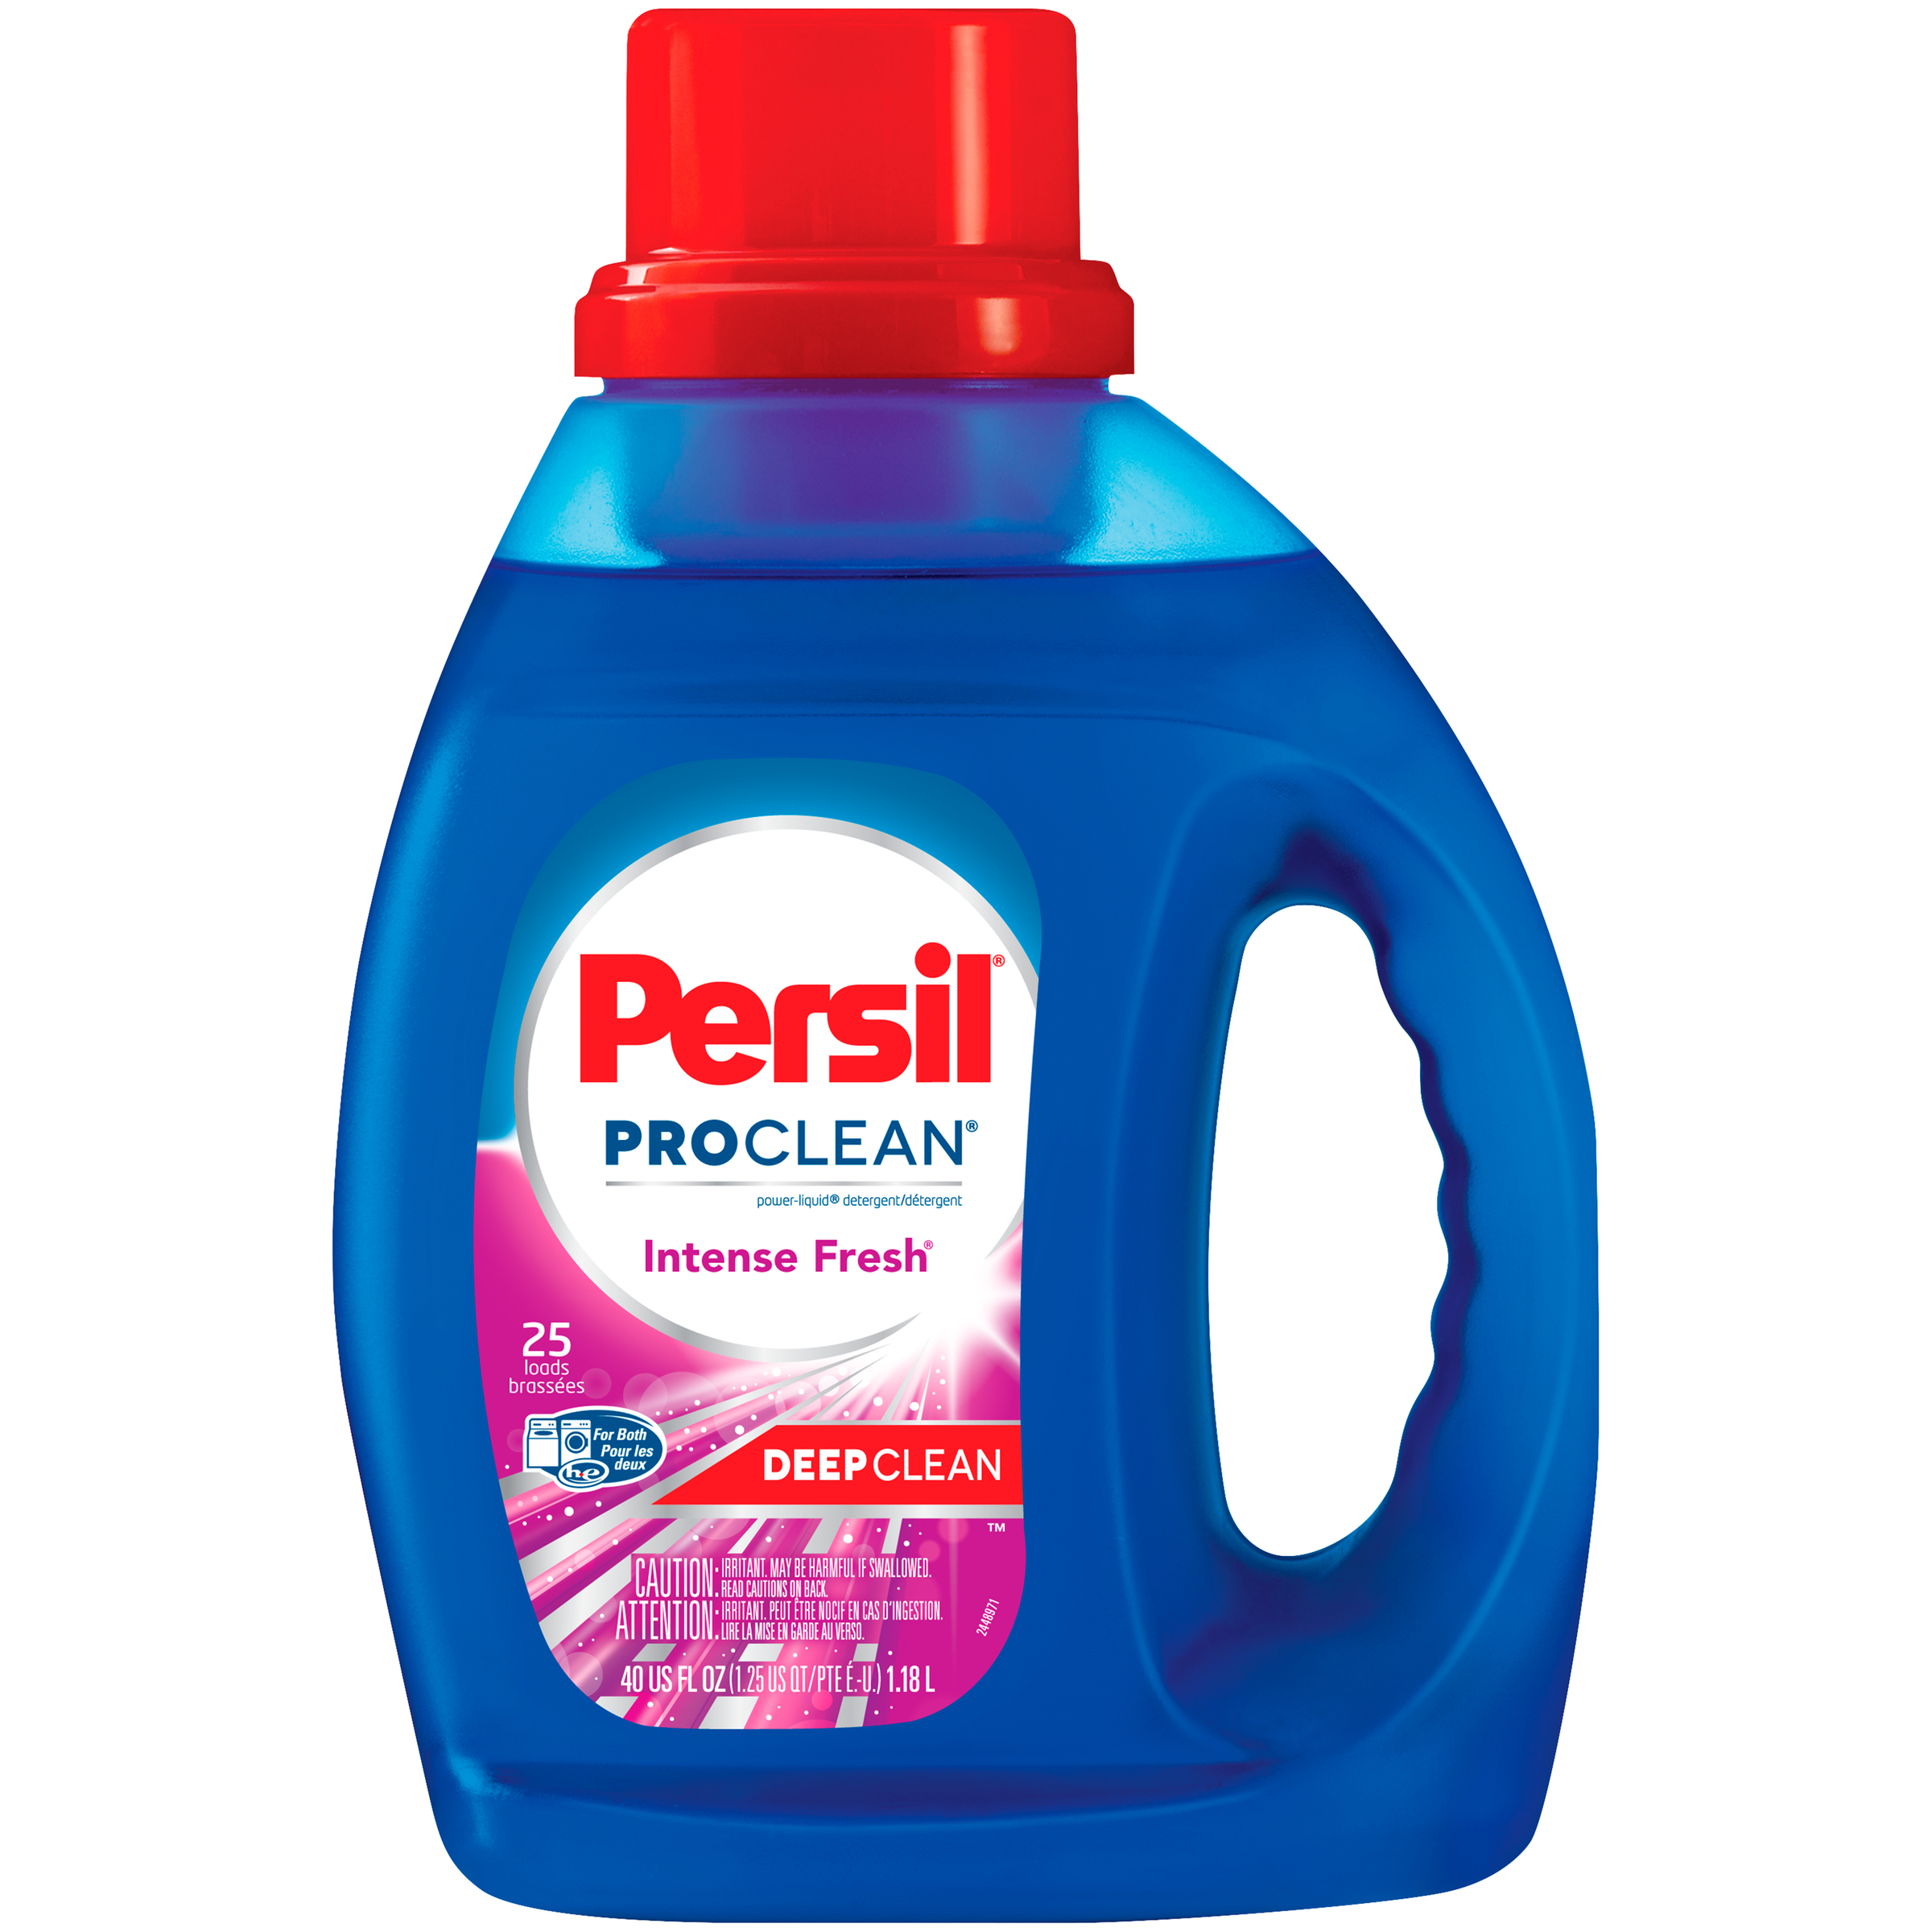 Persil ProClean Liquid Laundry Detergent, Intense Fresh, 40 Fluid Ounces, 25 Loads